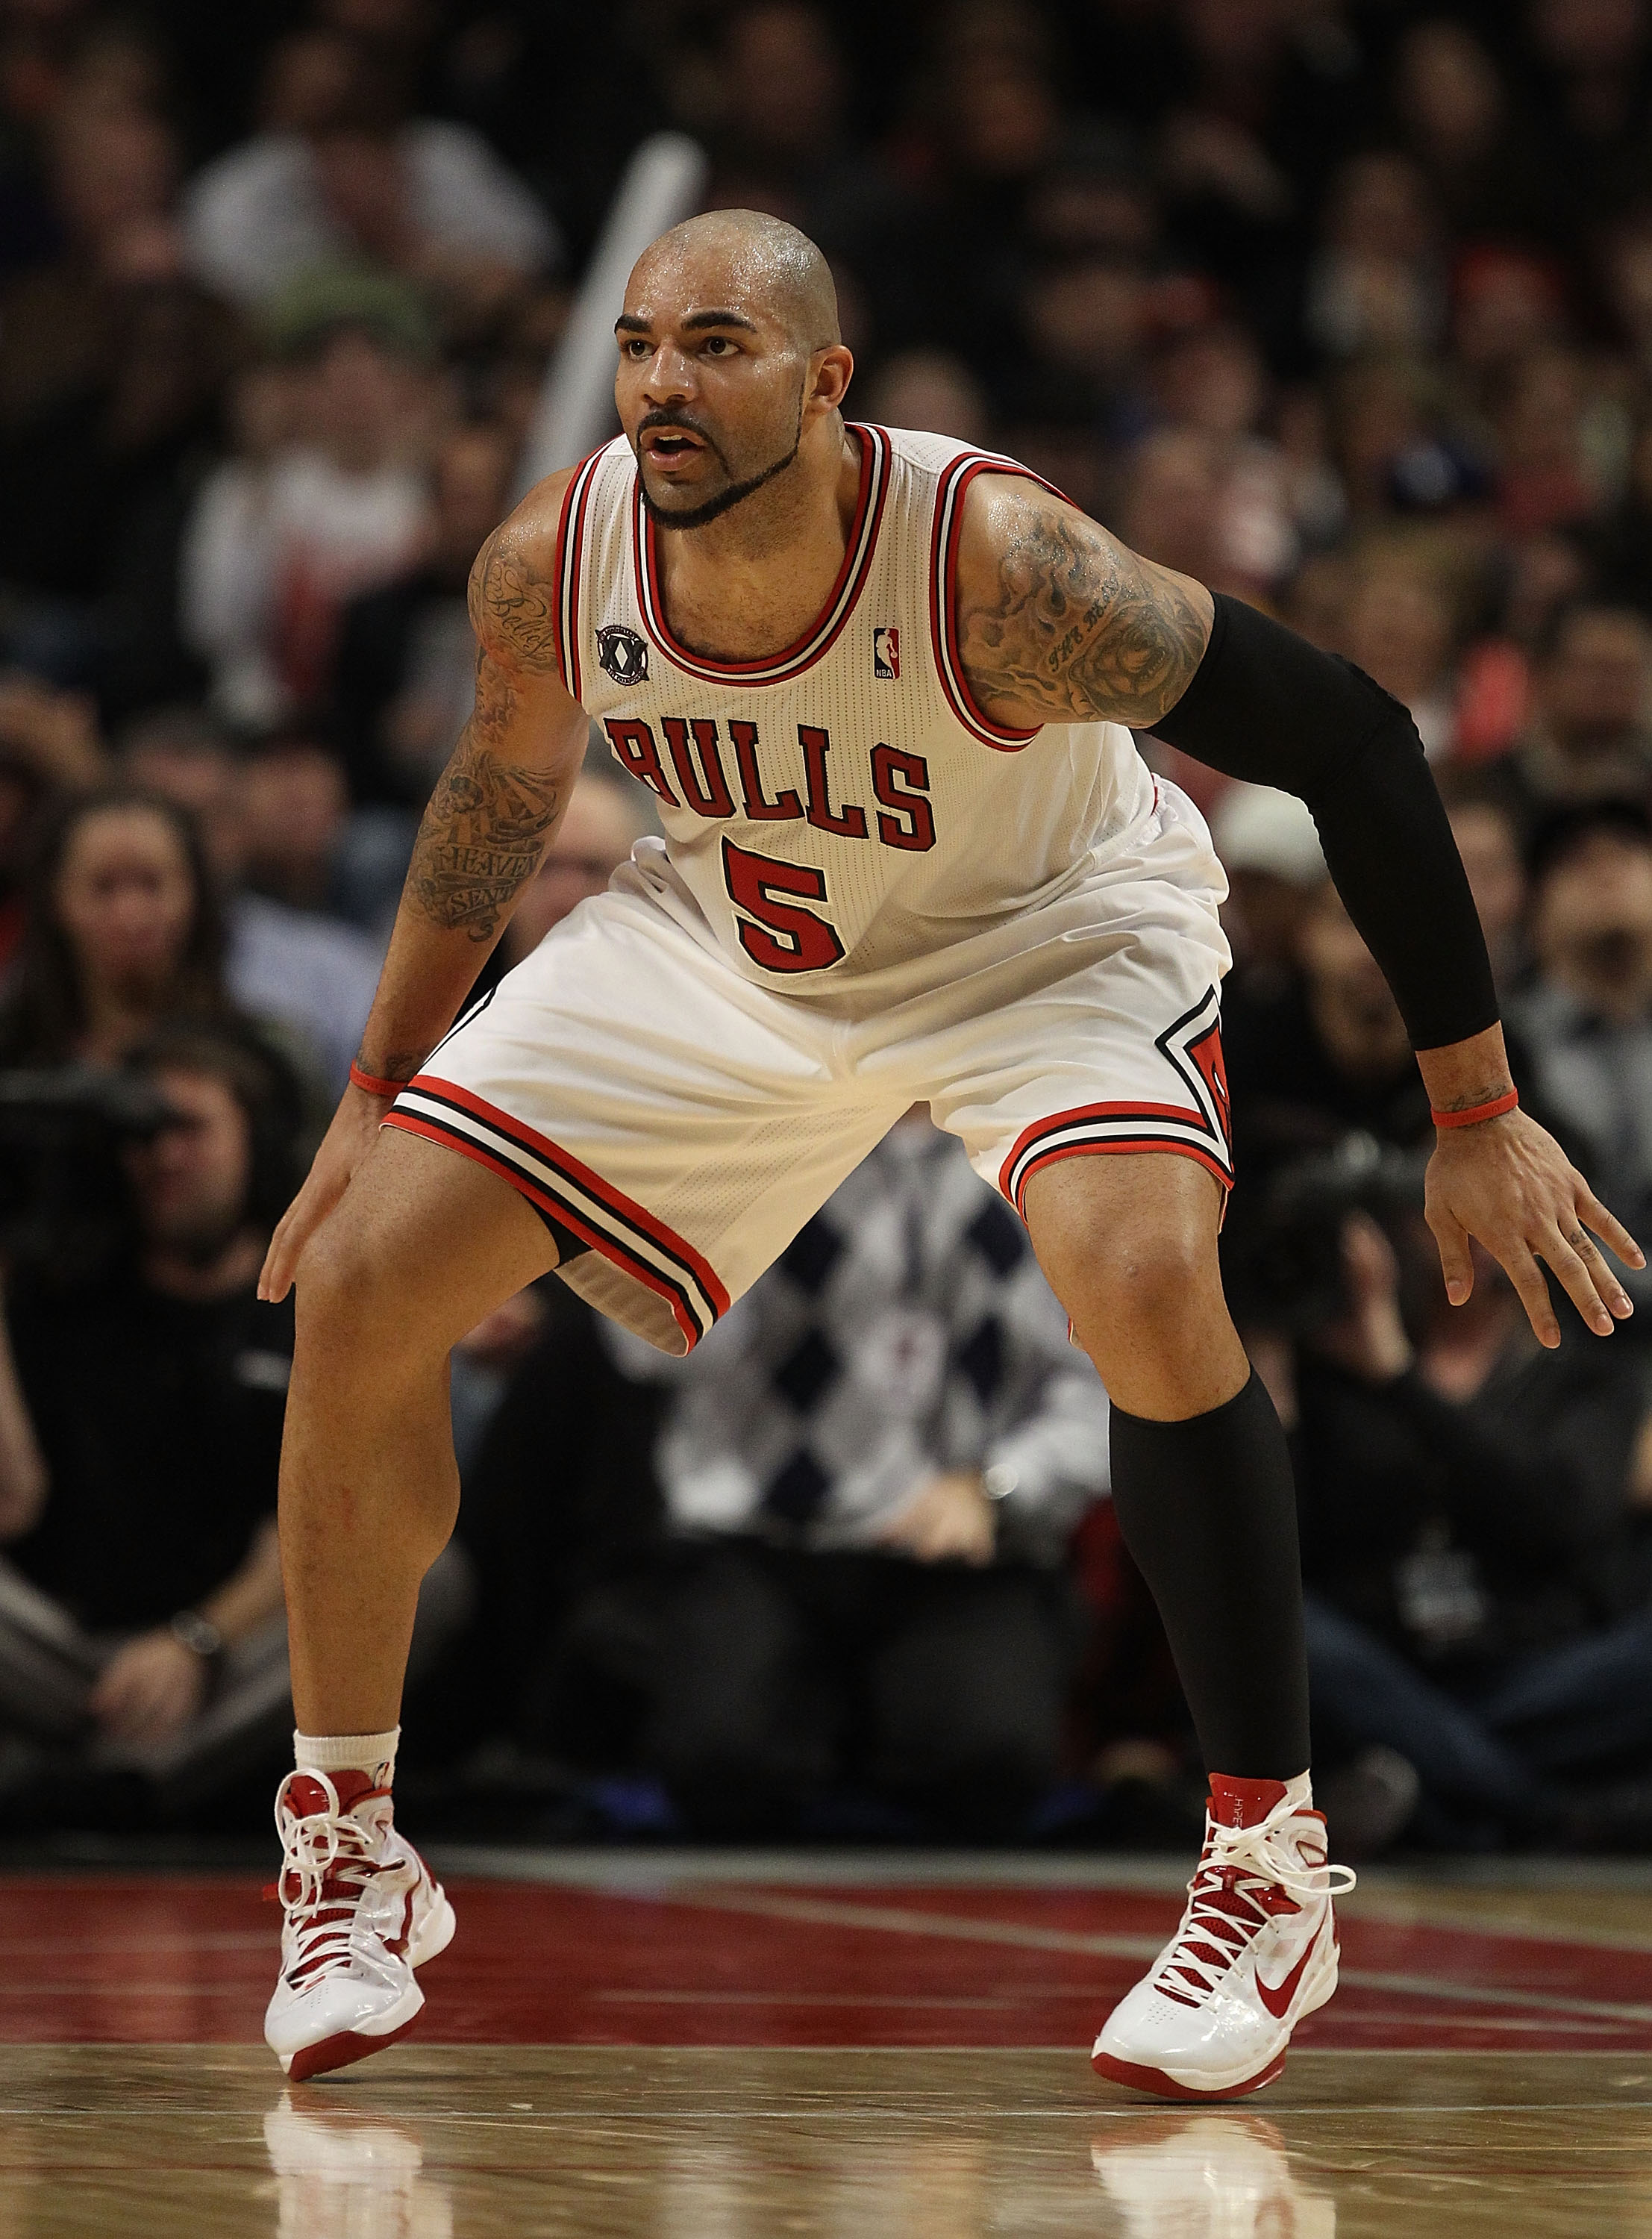 CHICAGO, IL - DECEMBER 10: Carlos Boozer #5 of the Chicago Bulls sets to defend against the Los Angeles Lakers at the United Center on December 10, 2010 in Chicago, Illinois. The Bulls defeated the Lakers 88-84. NOTE TO USER: User expressly acknowledges a